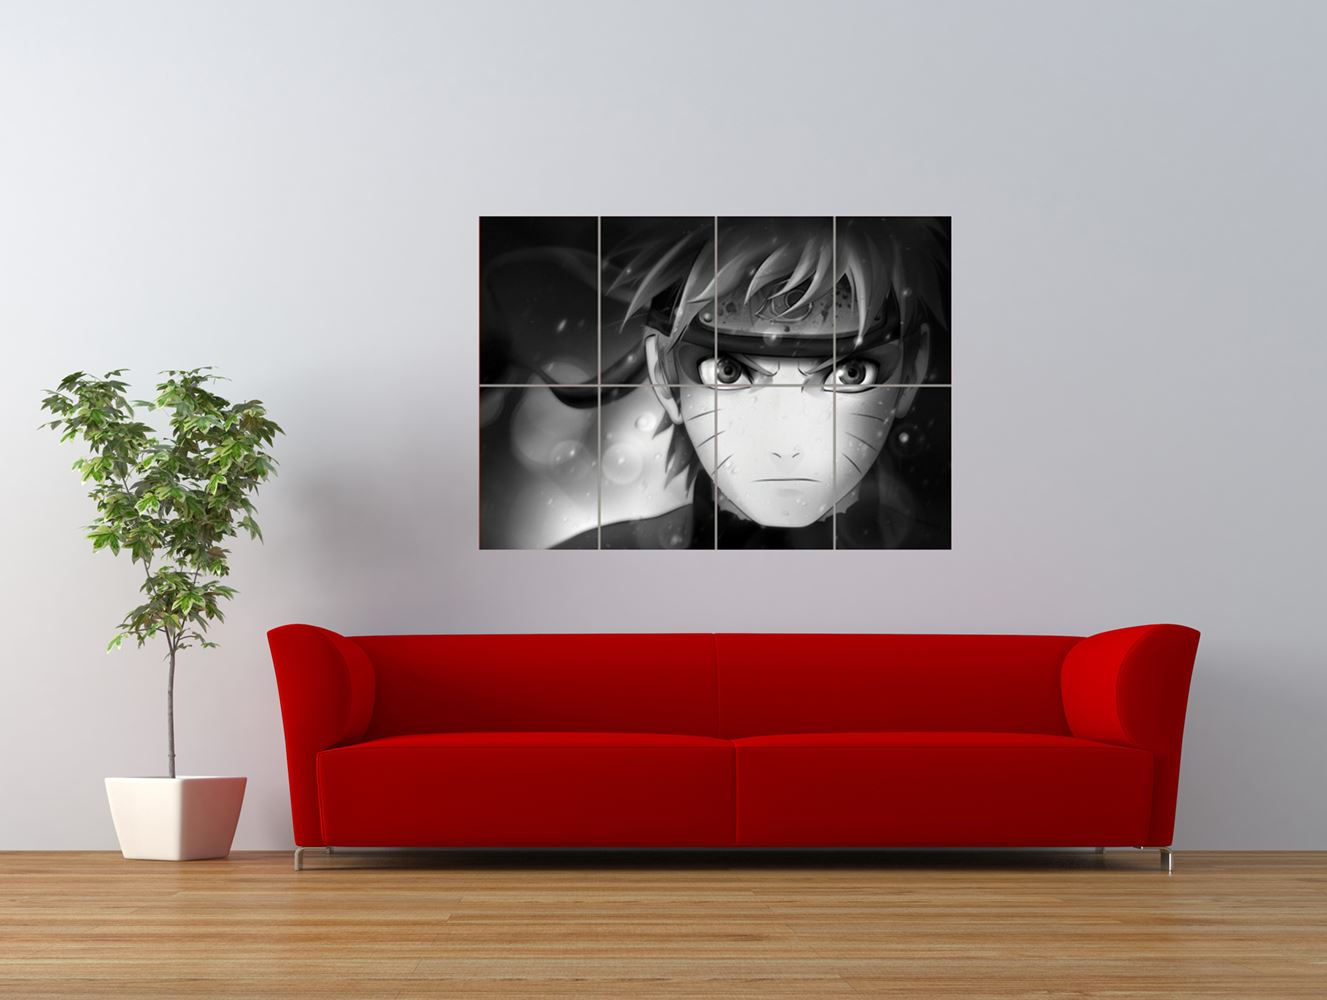 naruto anime manga character animation giant art print panel poster nor0009 ebay. Black Bedroom Furniture Sets. Home Design Ideas